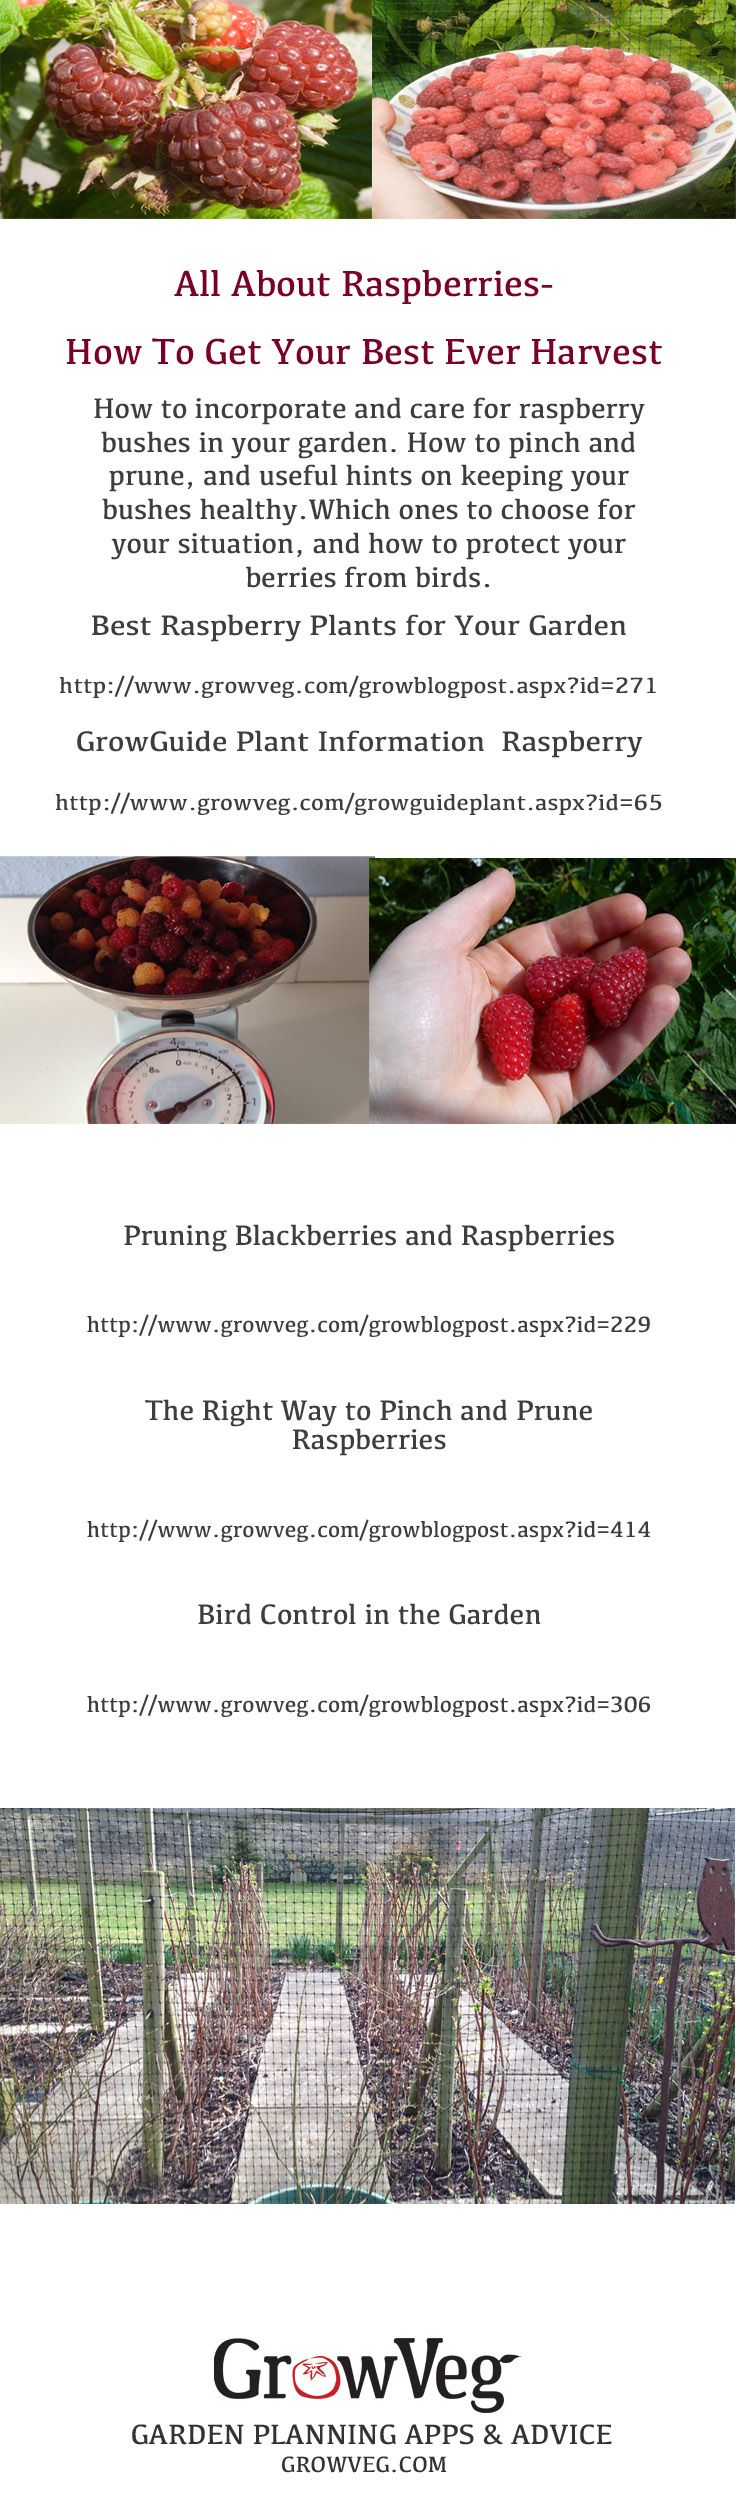 Which raspberry plants to choose for your garden, which varieties to try, how to pinch and prune your bushes and how to keep them healthy. How to deal with both summer and autumn fruiting canes and how to then protect your crop from birds. In short how to get your best harvest ever.